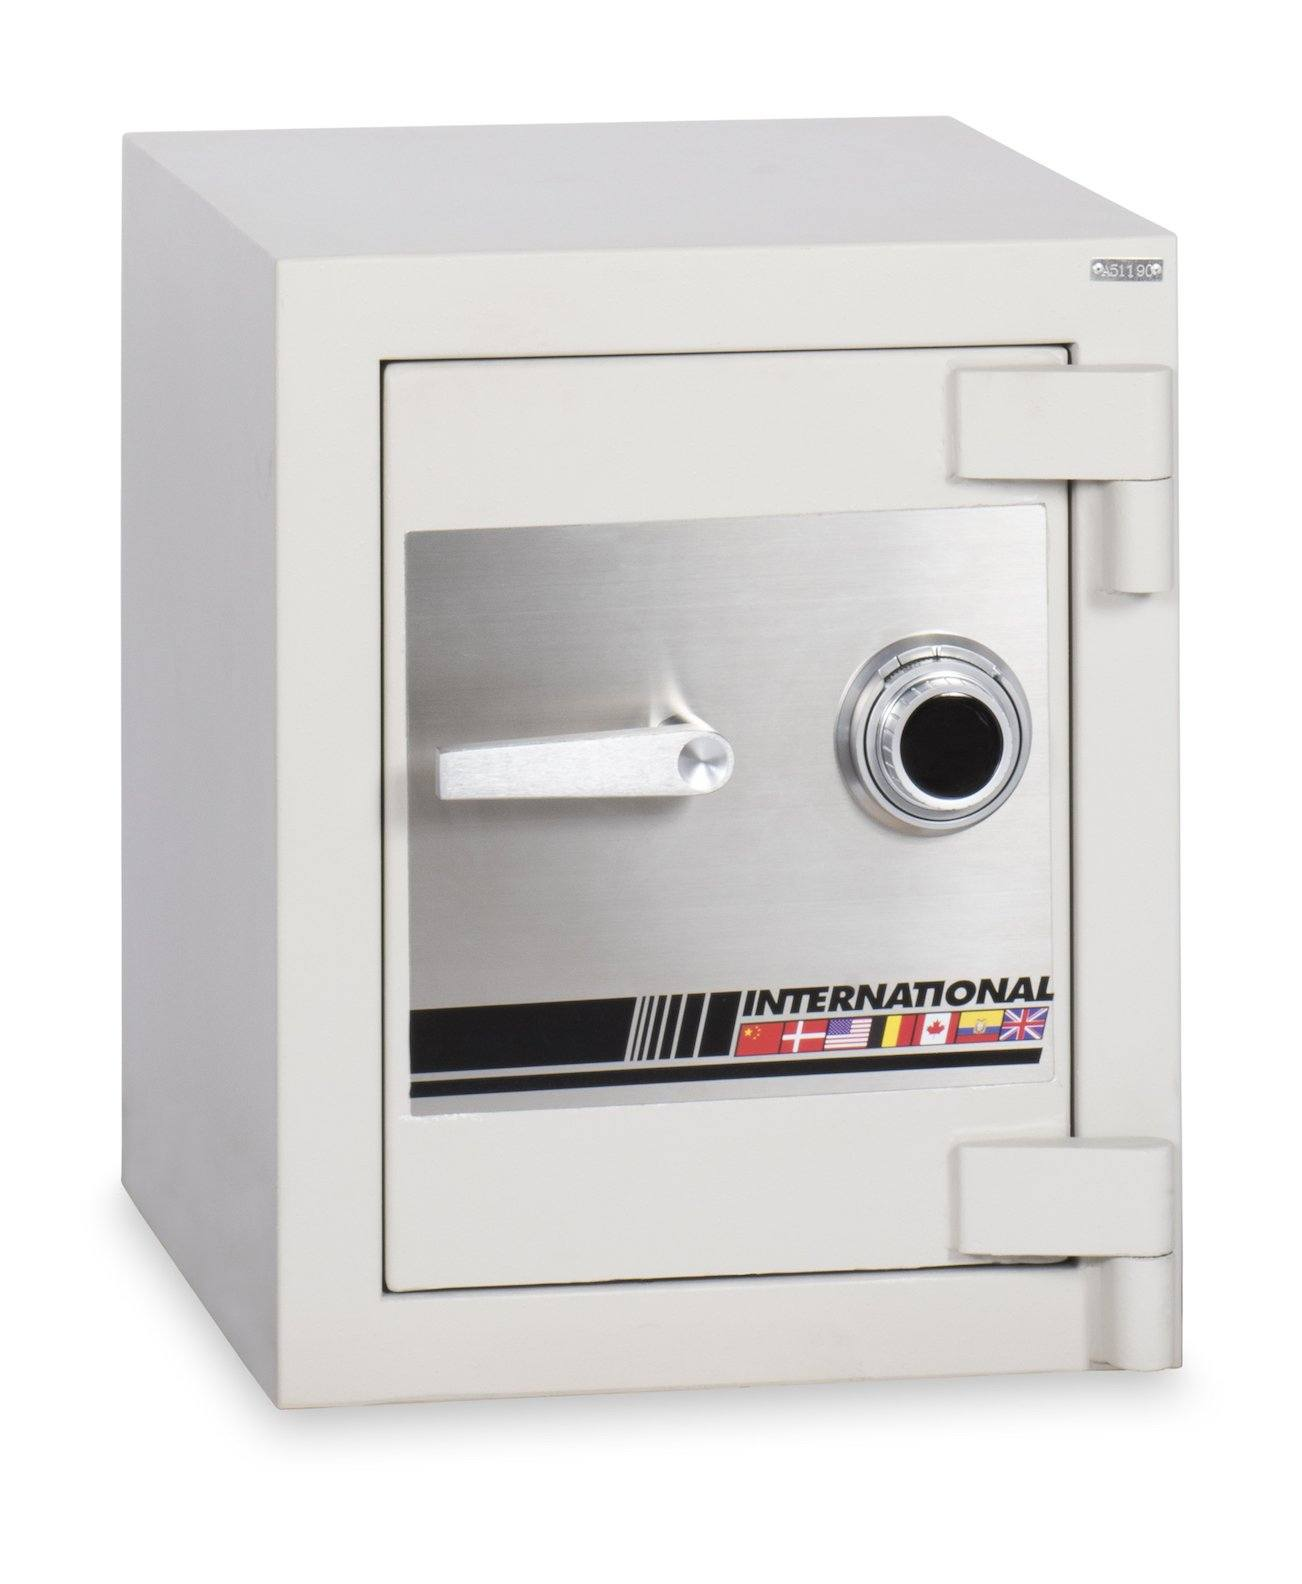 High Security Burglar Fire Safes - SafeandVaultStore FT15-1713 TL-15 High Security Burglar Fire Safe